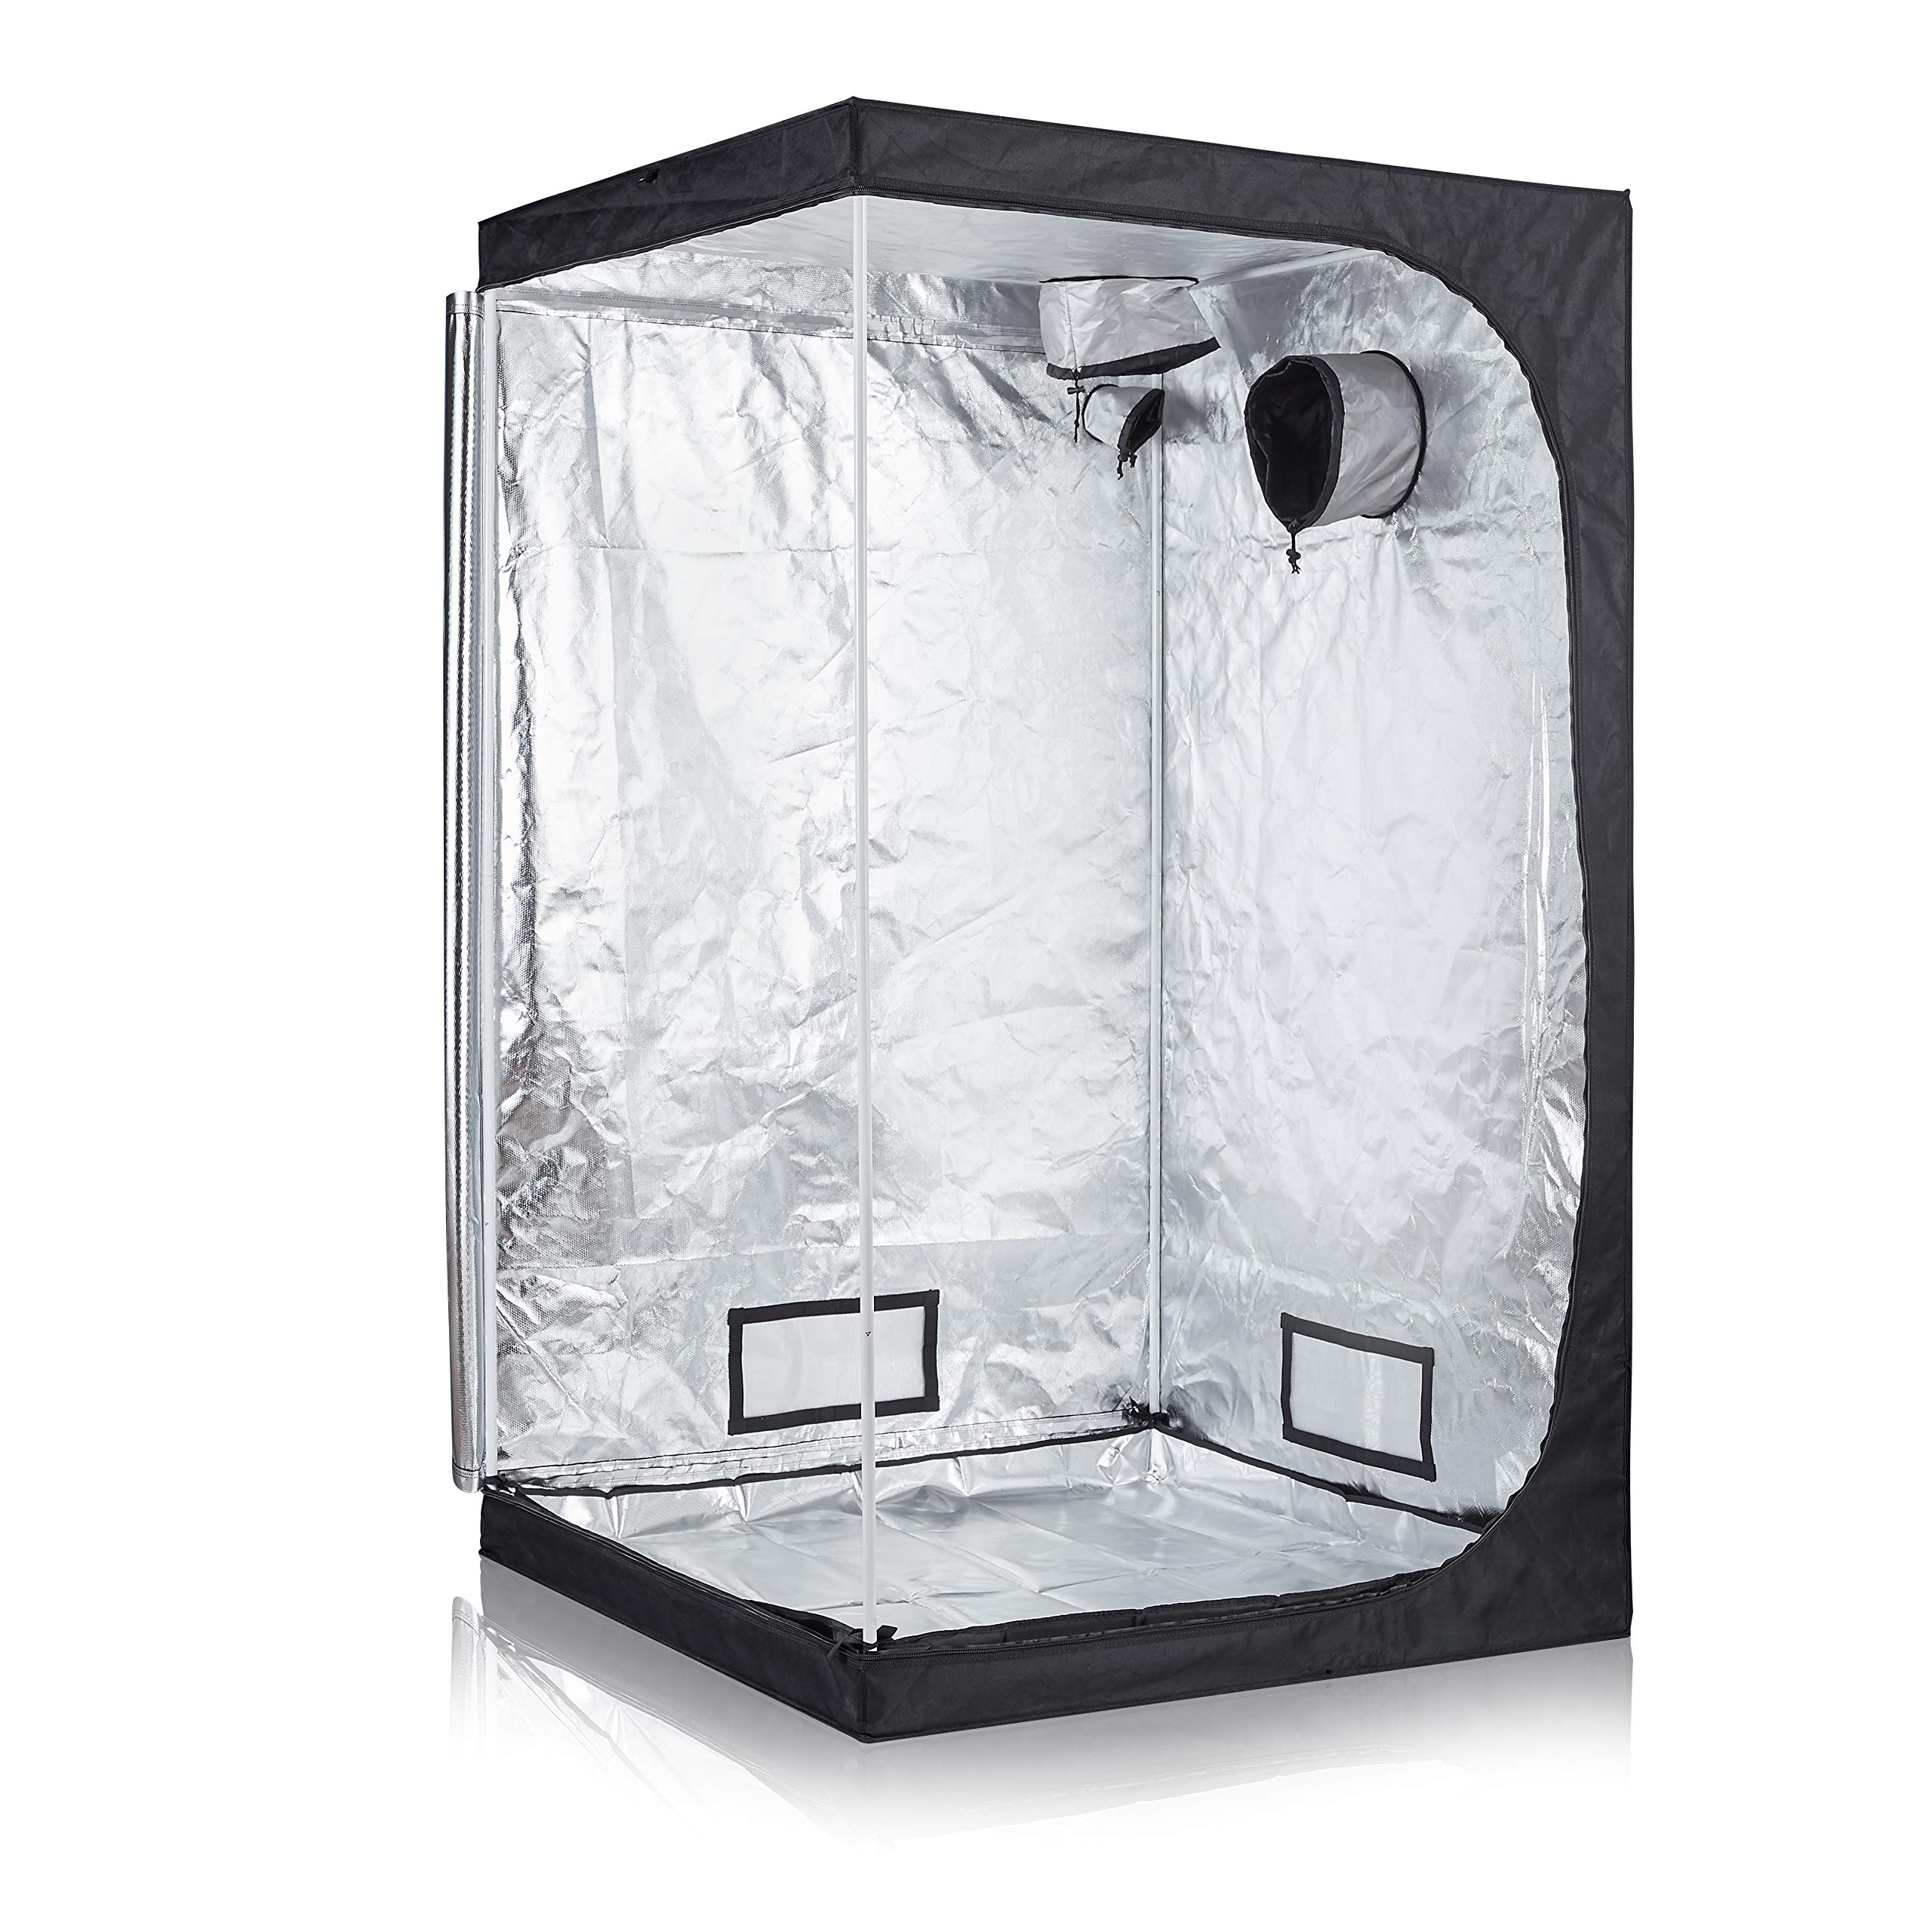 GreenHouser Garden Grow Tent High Reflection Room Grow Box for Indoor Fruit Flower and Veg Planting with Plastic Connections/Removable Water-Proof Floor Tray (48''x48''x80'')